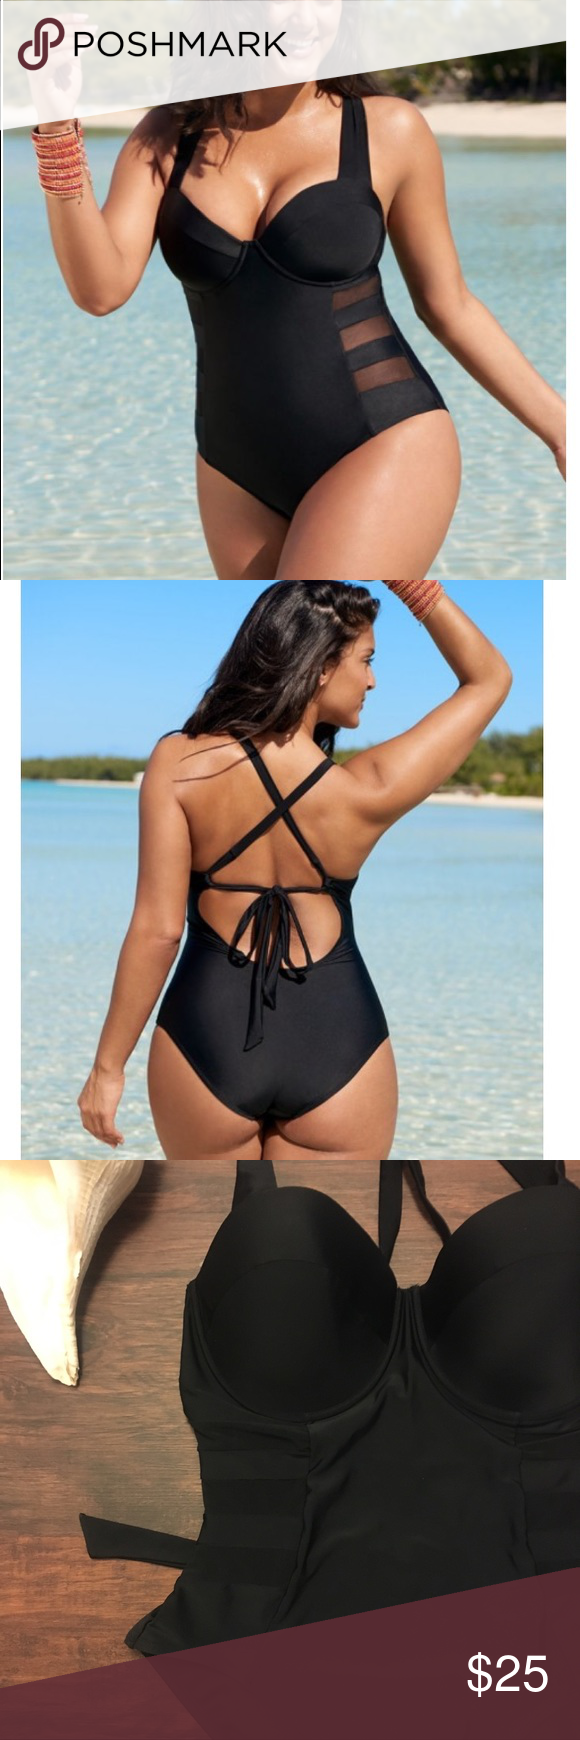 7d106c172a85e ADORE ME PLUS Black One Piece Mesh Swimsuit 2x 3x ADORE ME PLUS - Size 40DDD